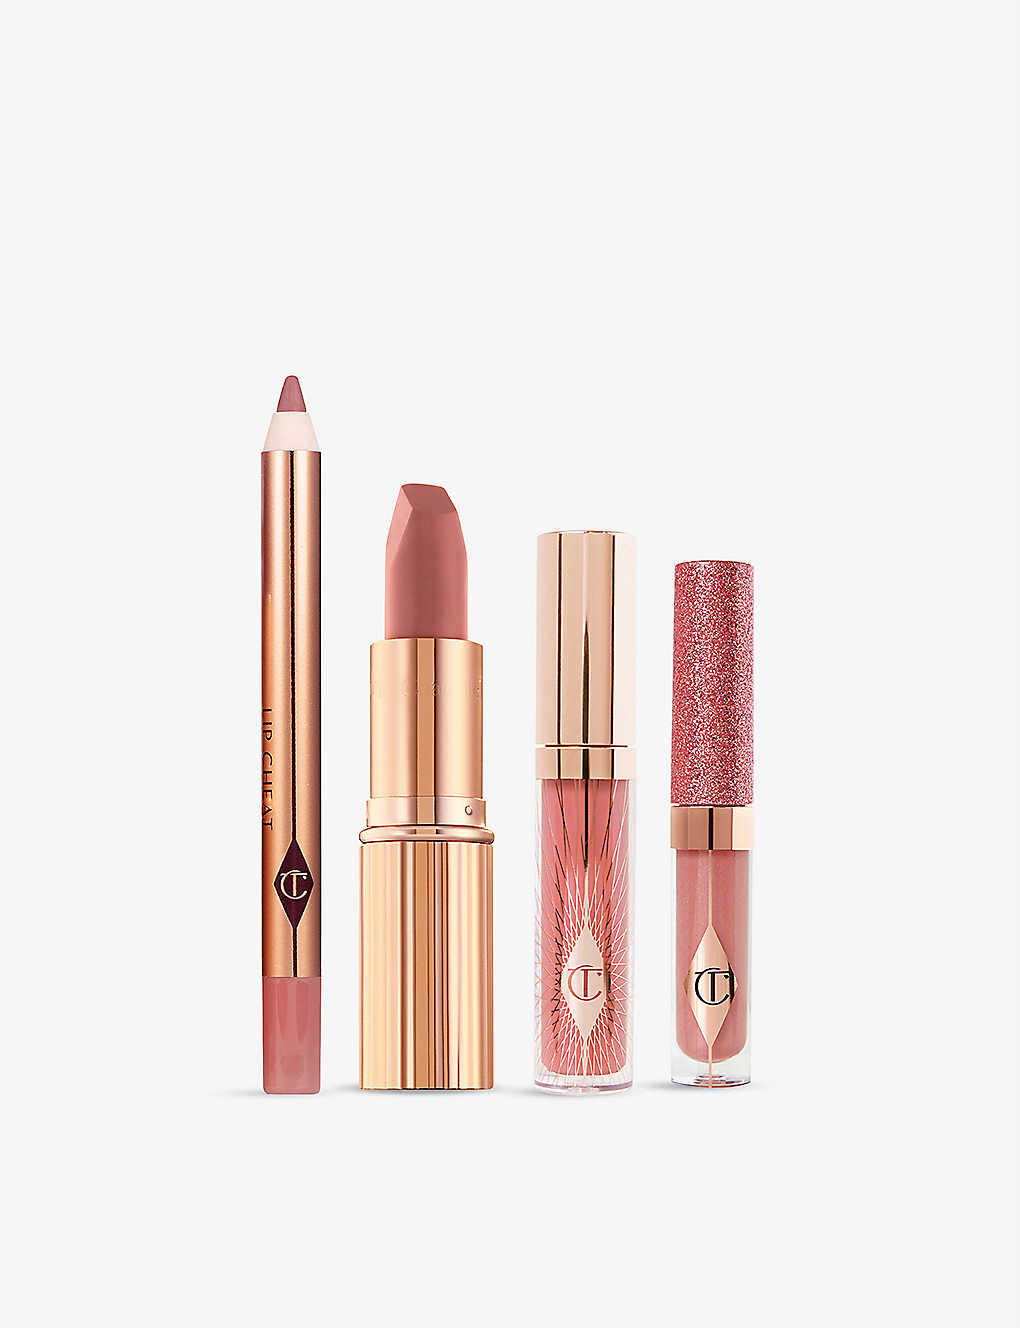 CHARLOTTE TILBURY: Pillow Talk Lip Secrets gift set